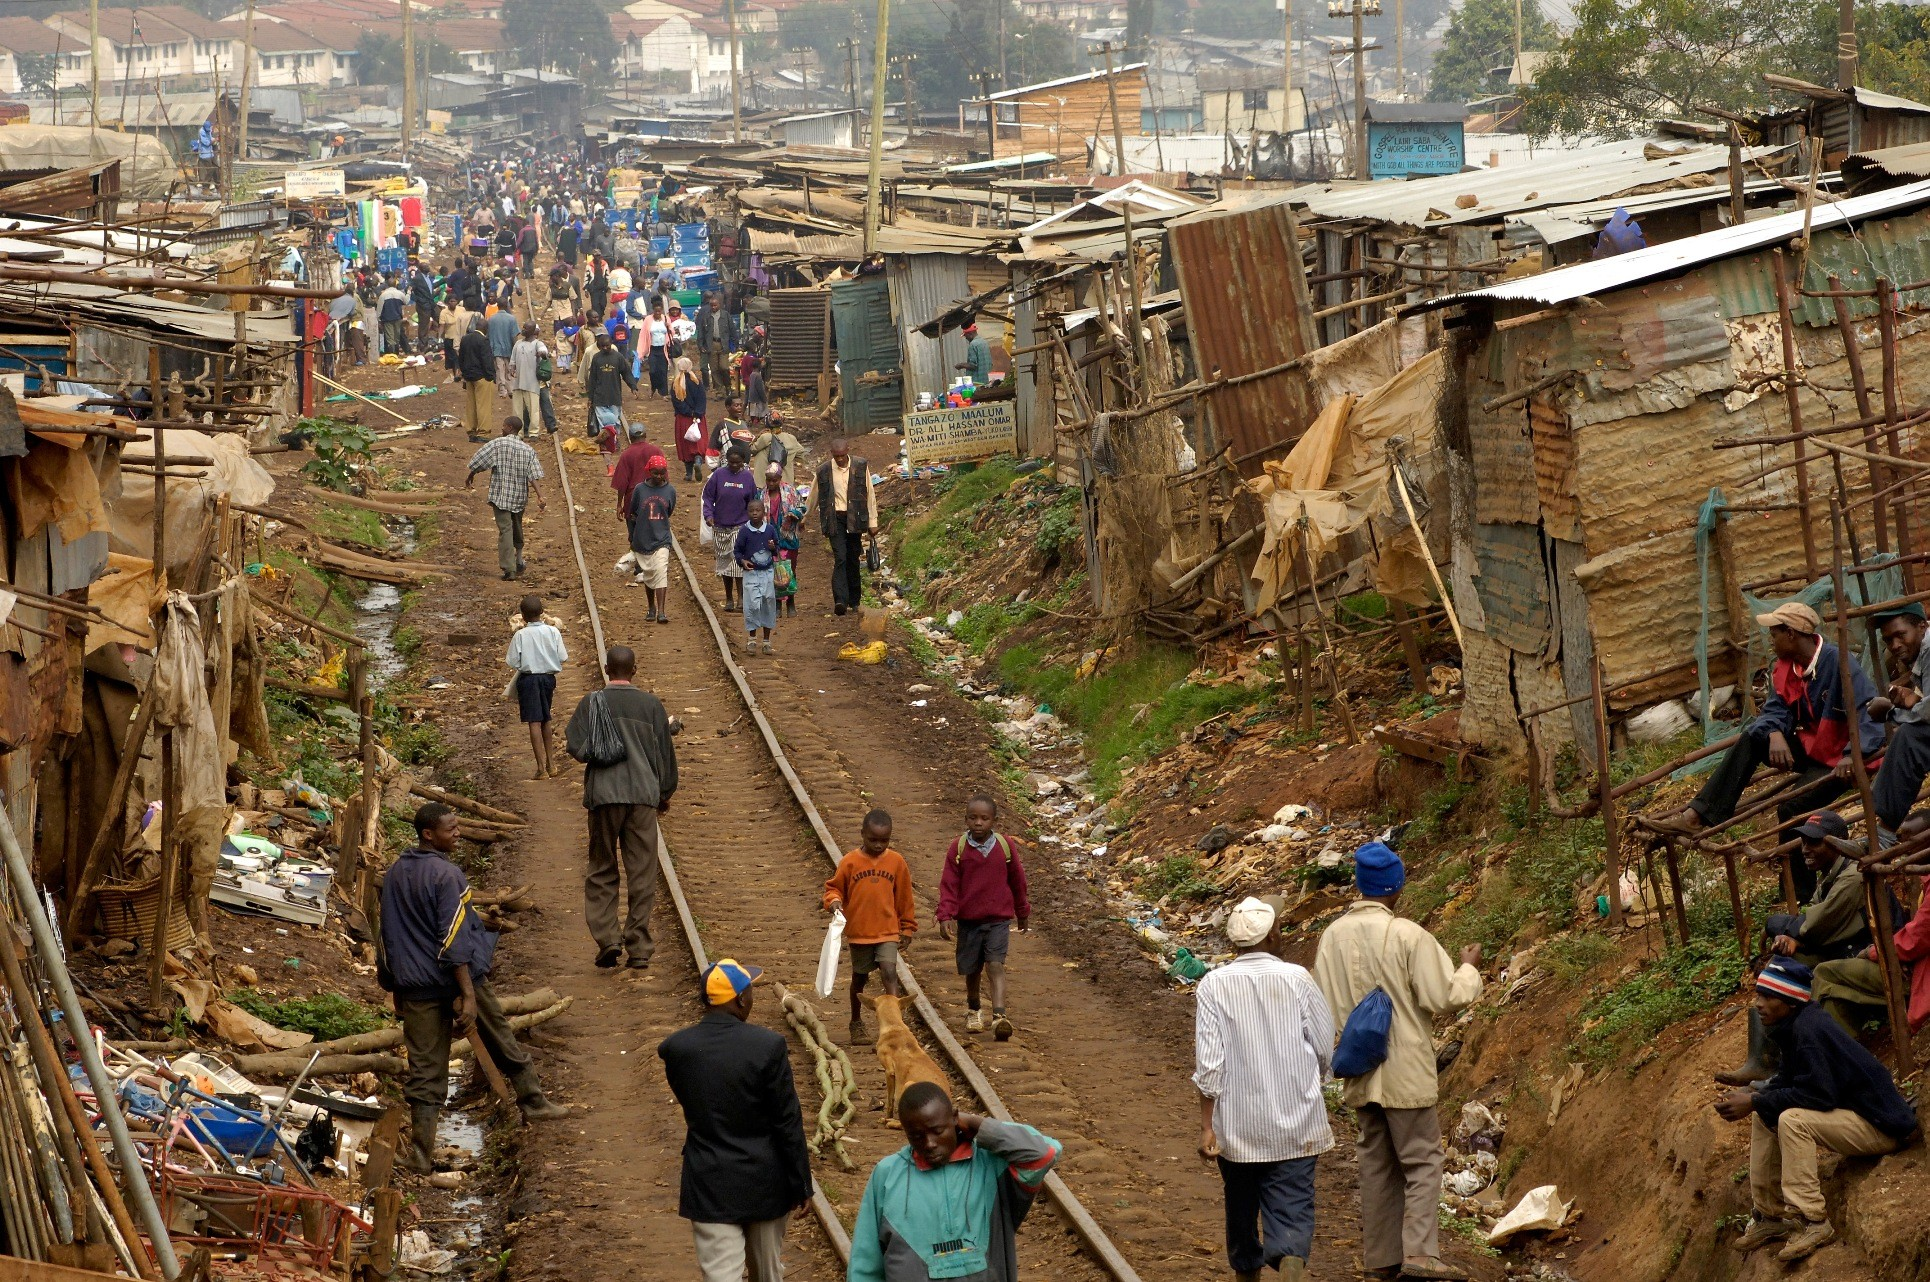 Poverty in Africa is now falling – but not just fast enough - Ventures Africa